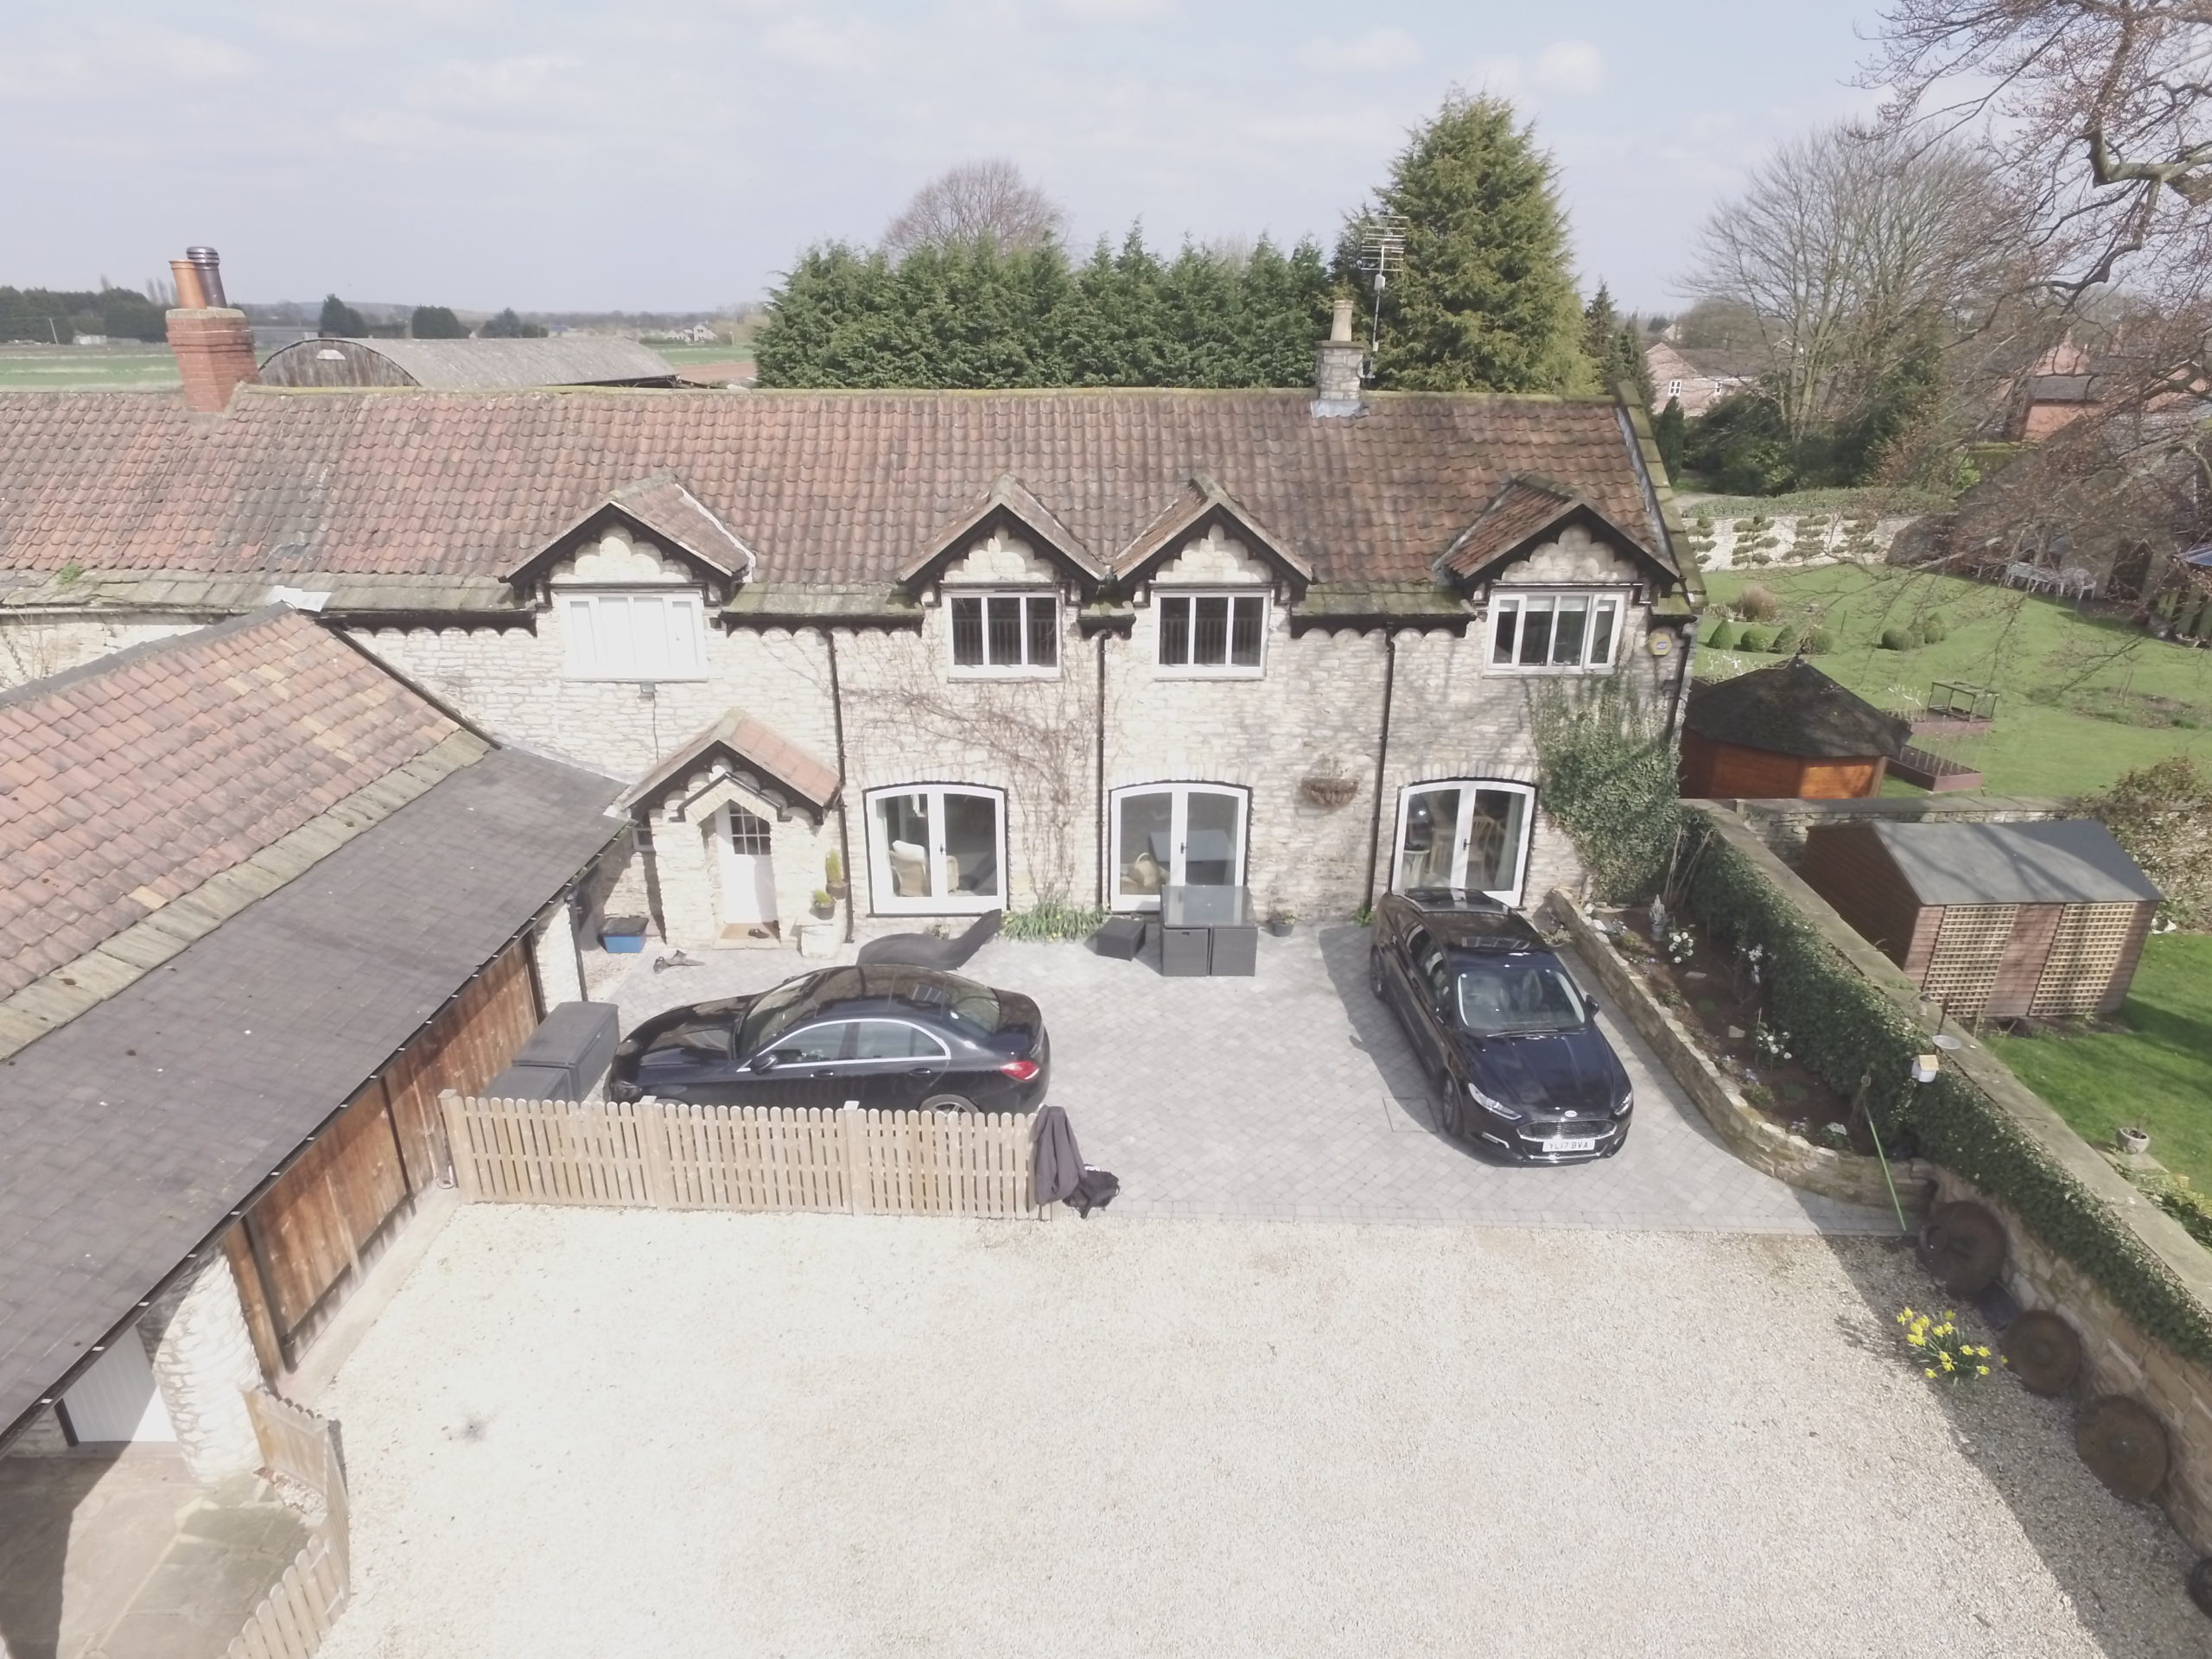 Arial view of property under review for design